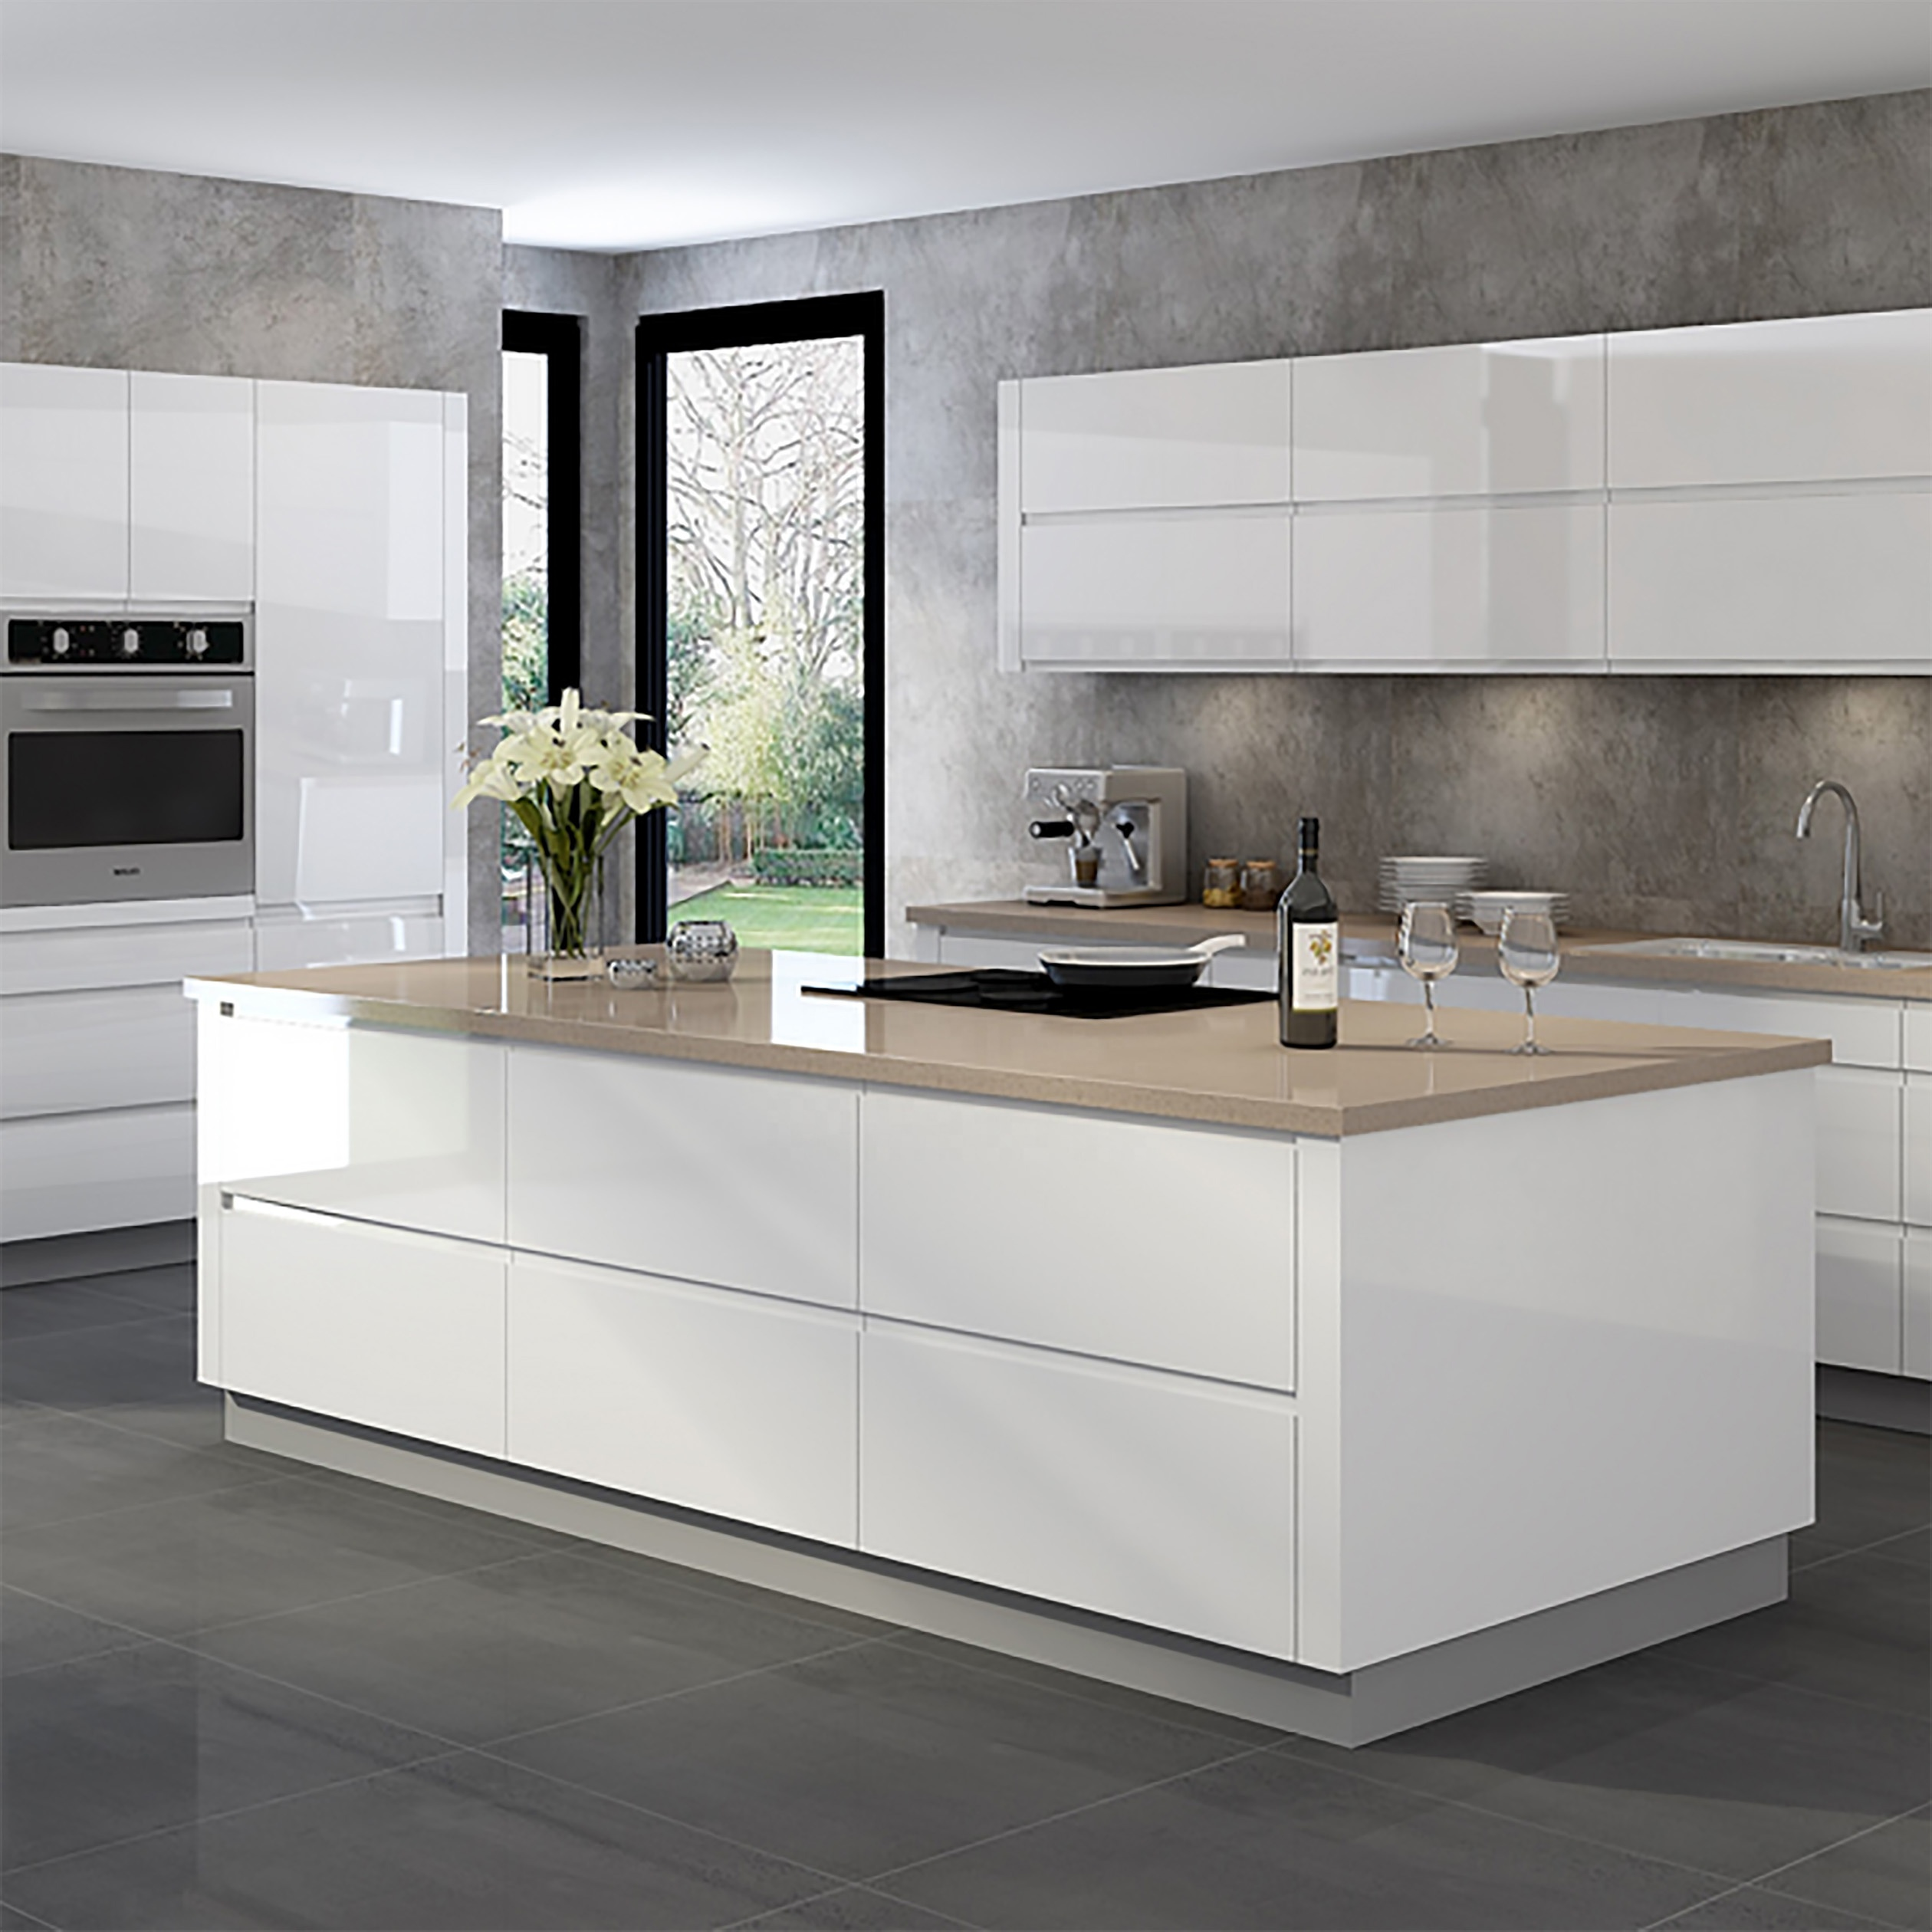 Modern Style Modular Luxury White Lacquer Kitchens Designs   Buy ...